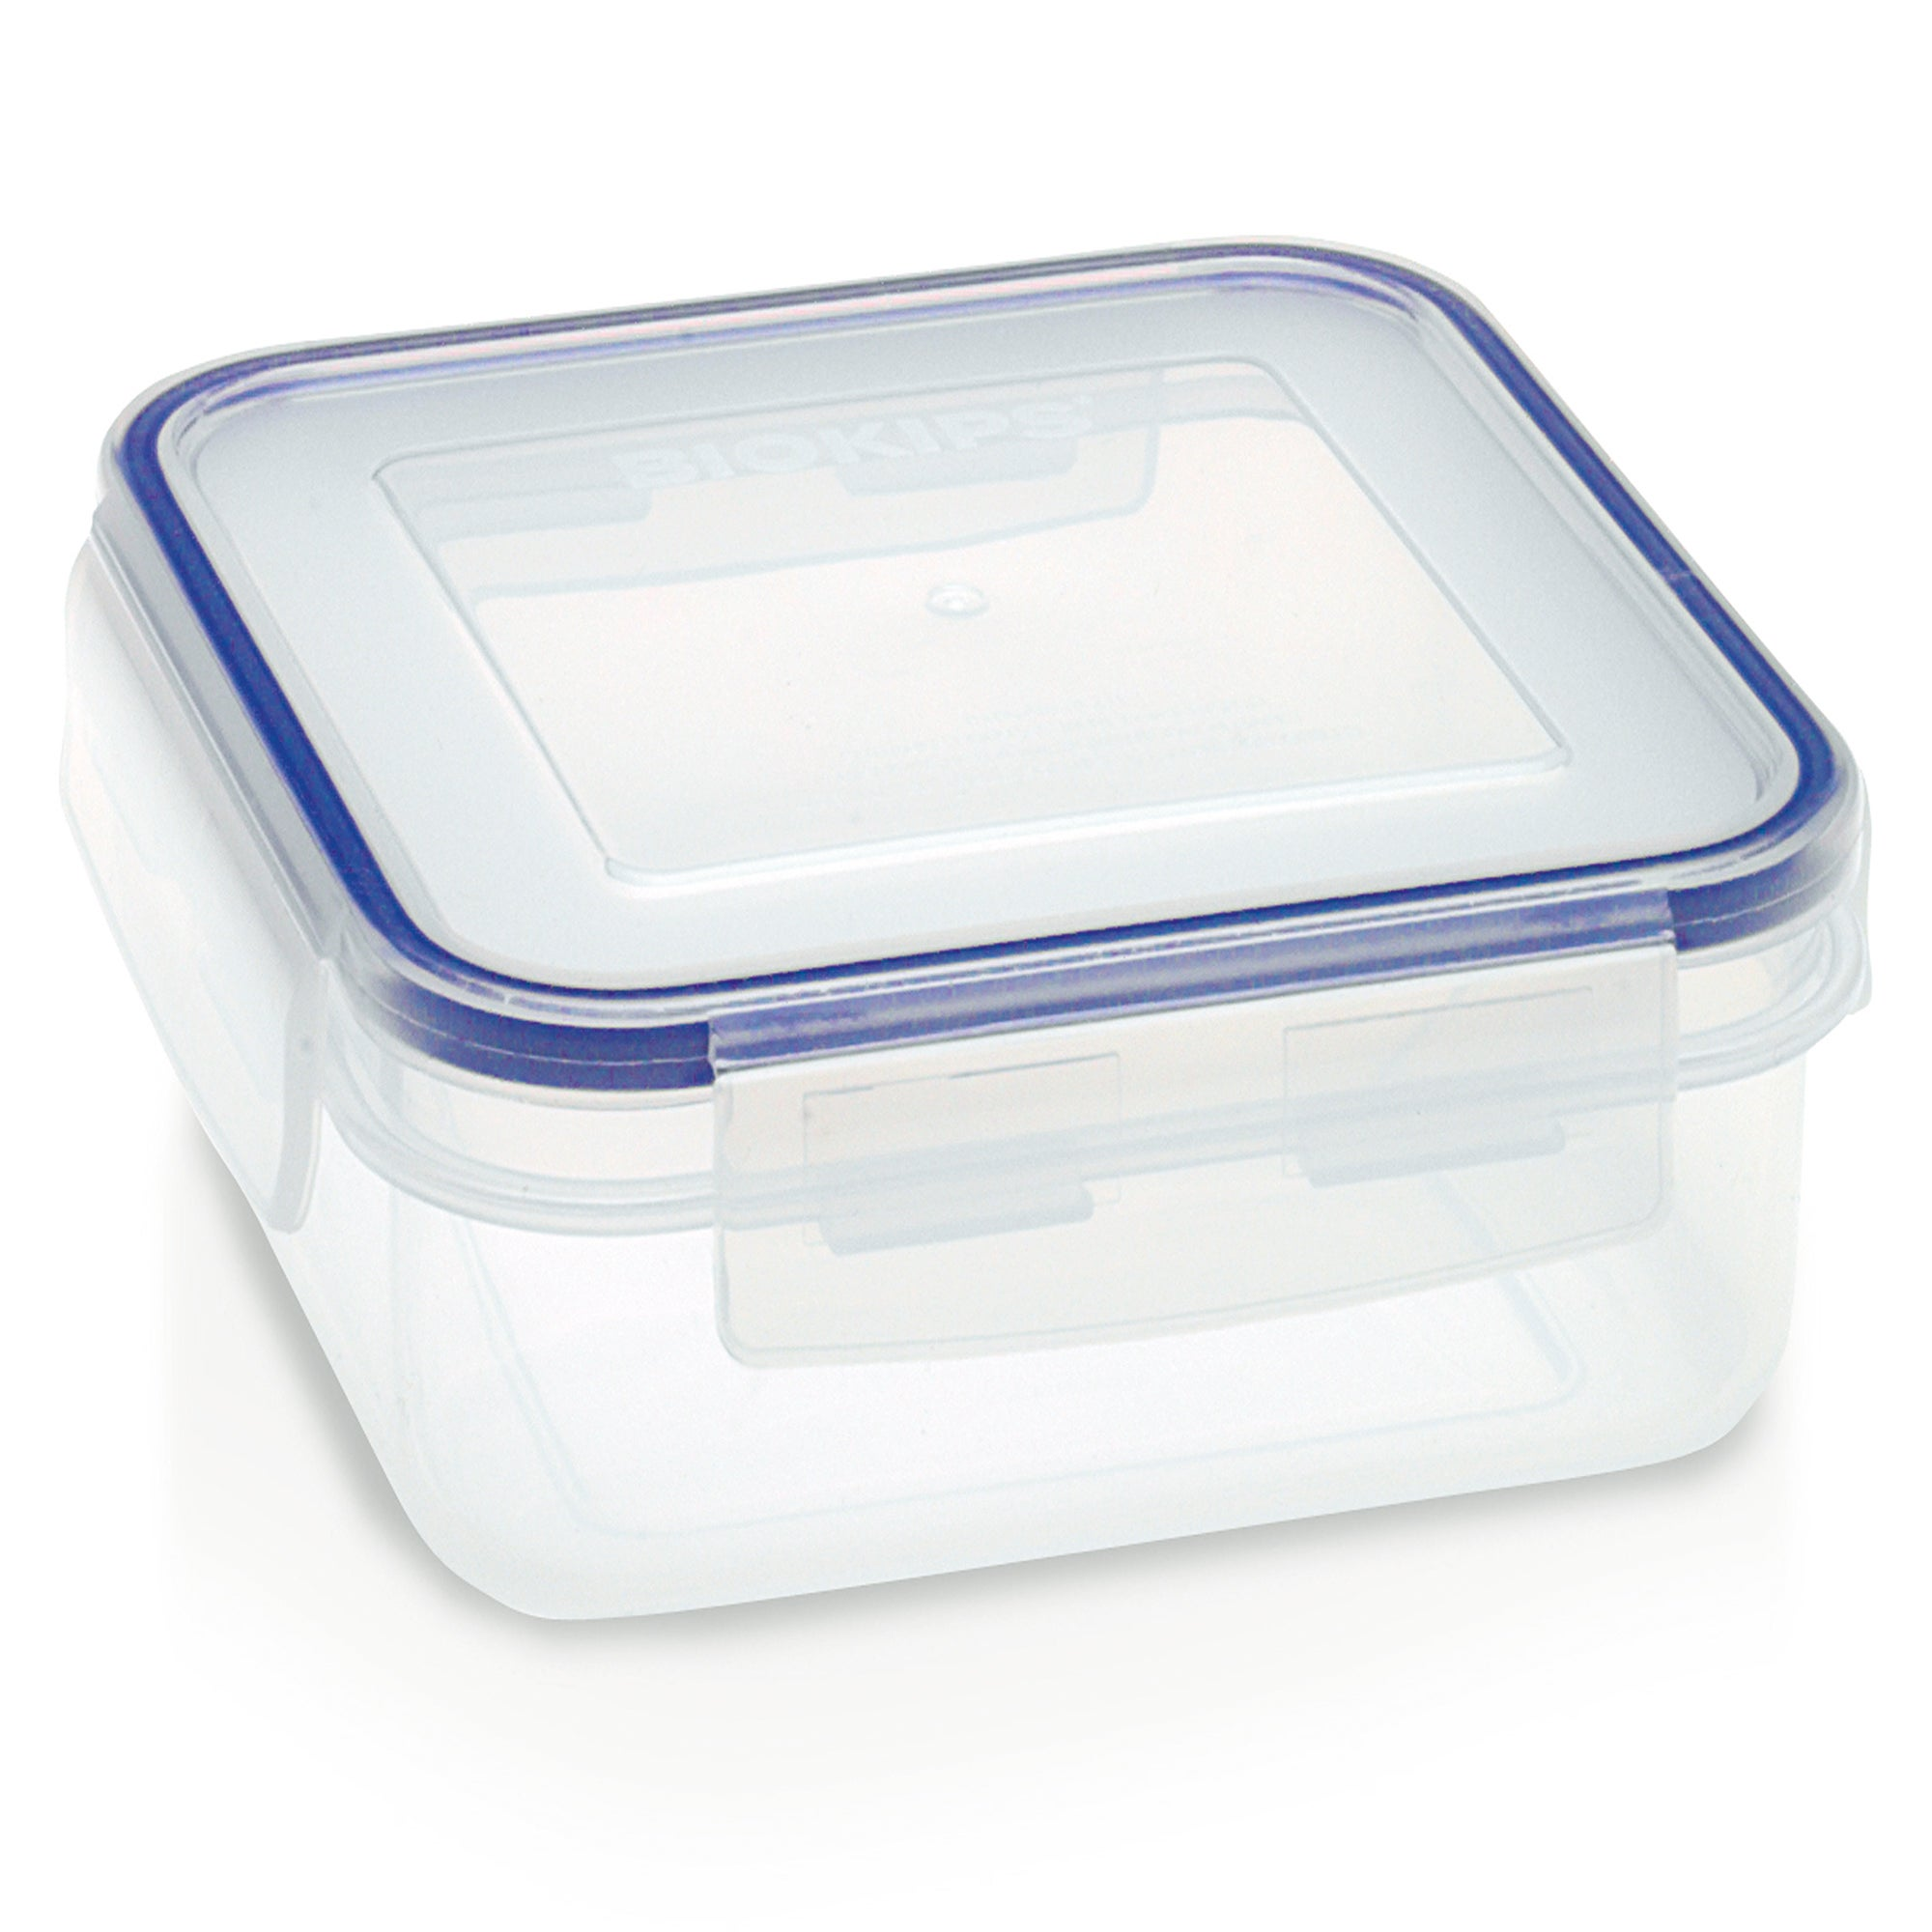 Addis Clip & Close Small Square Food Storage Box